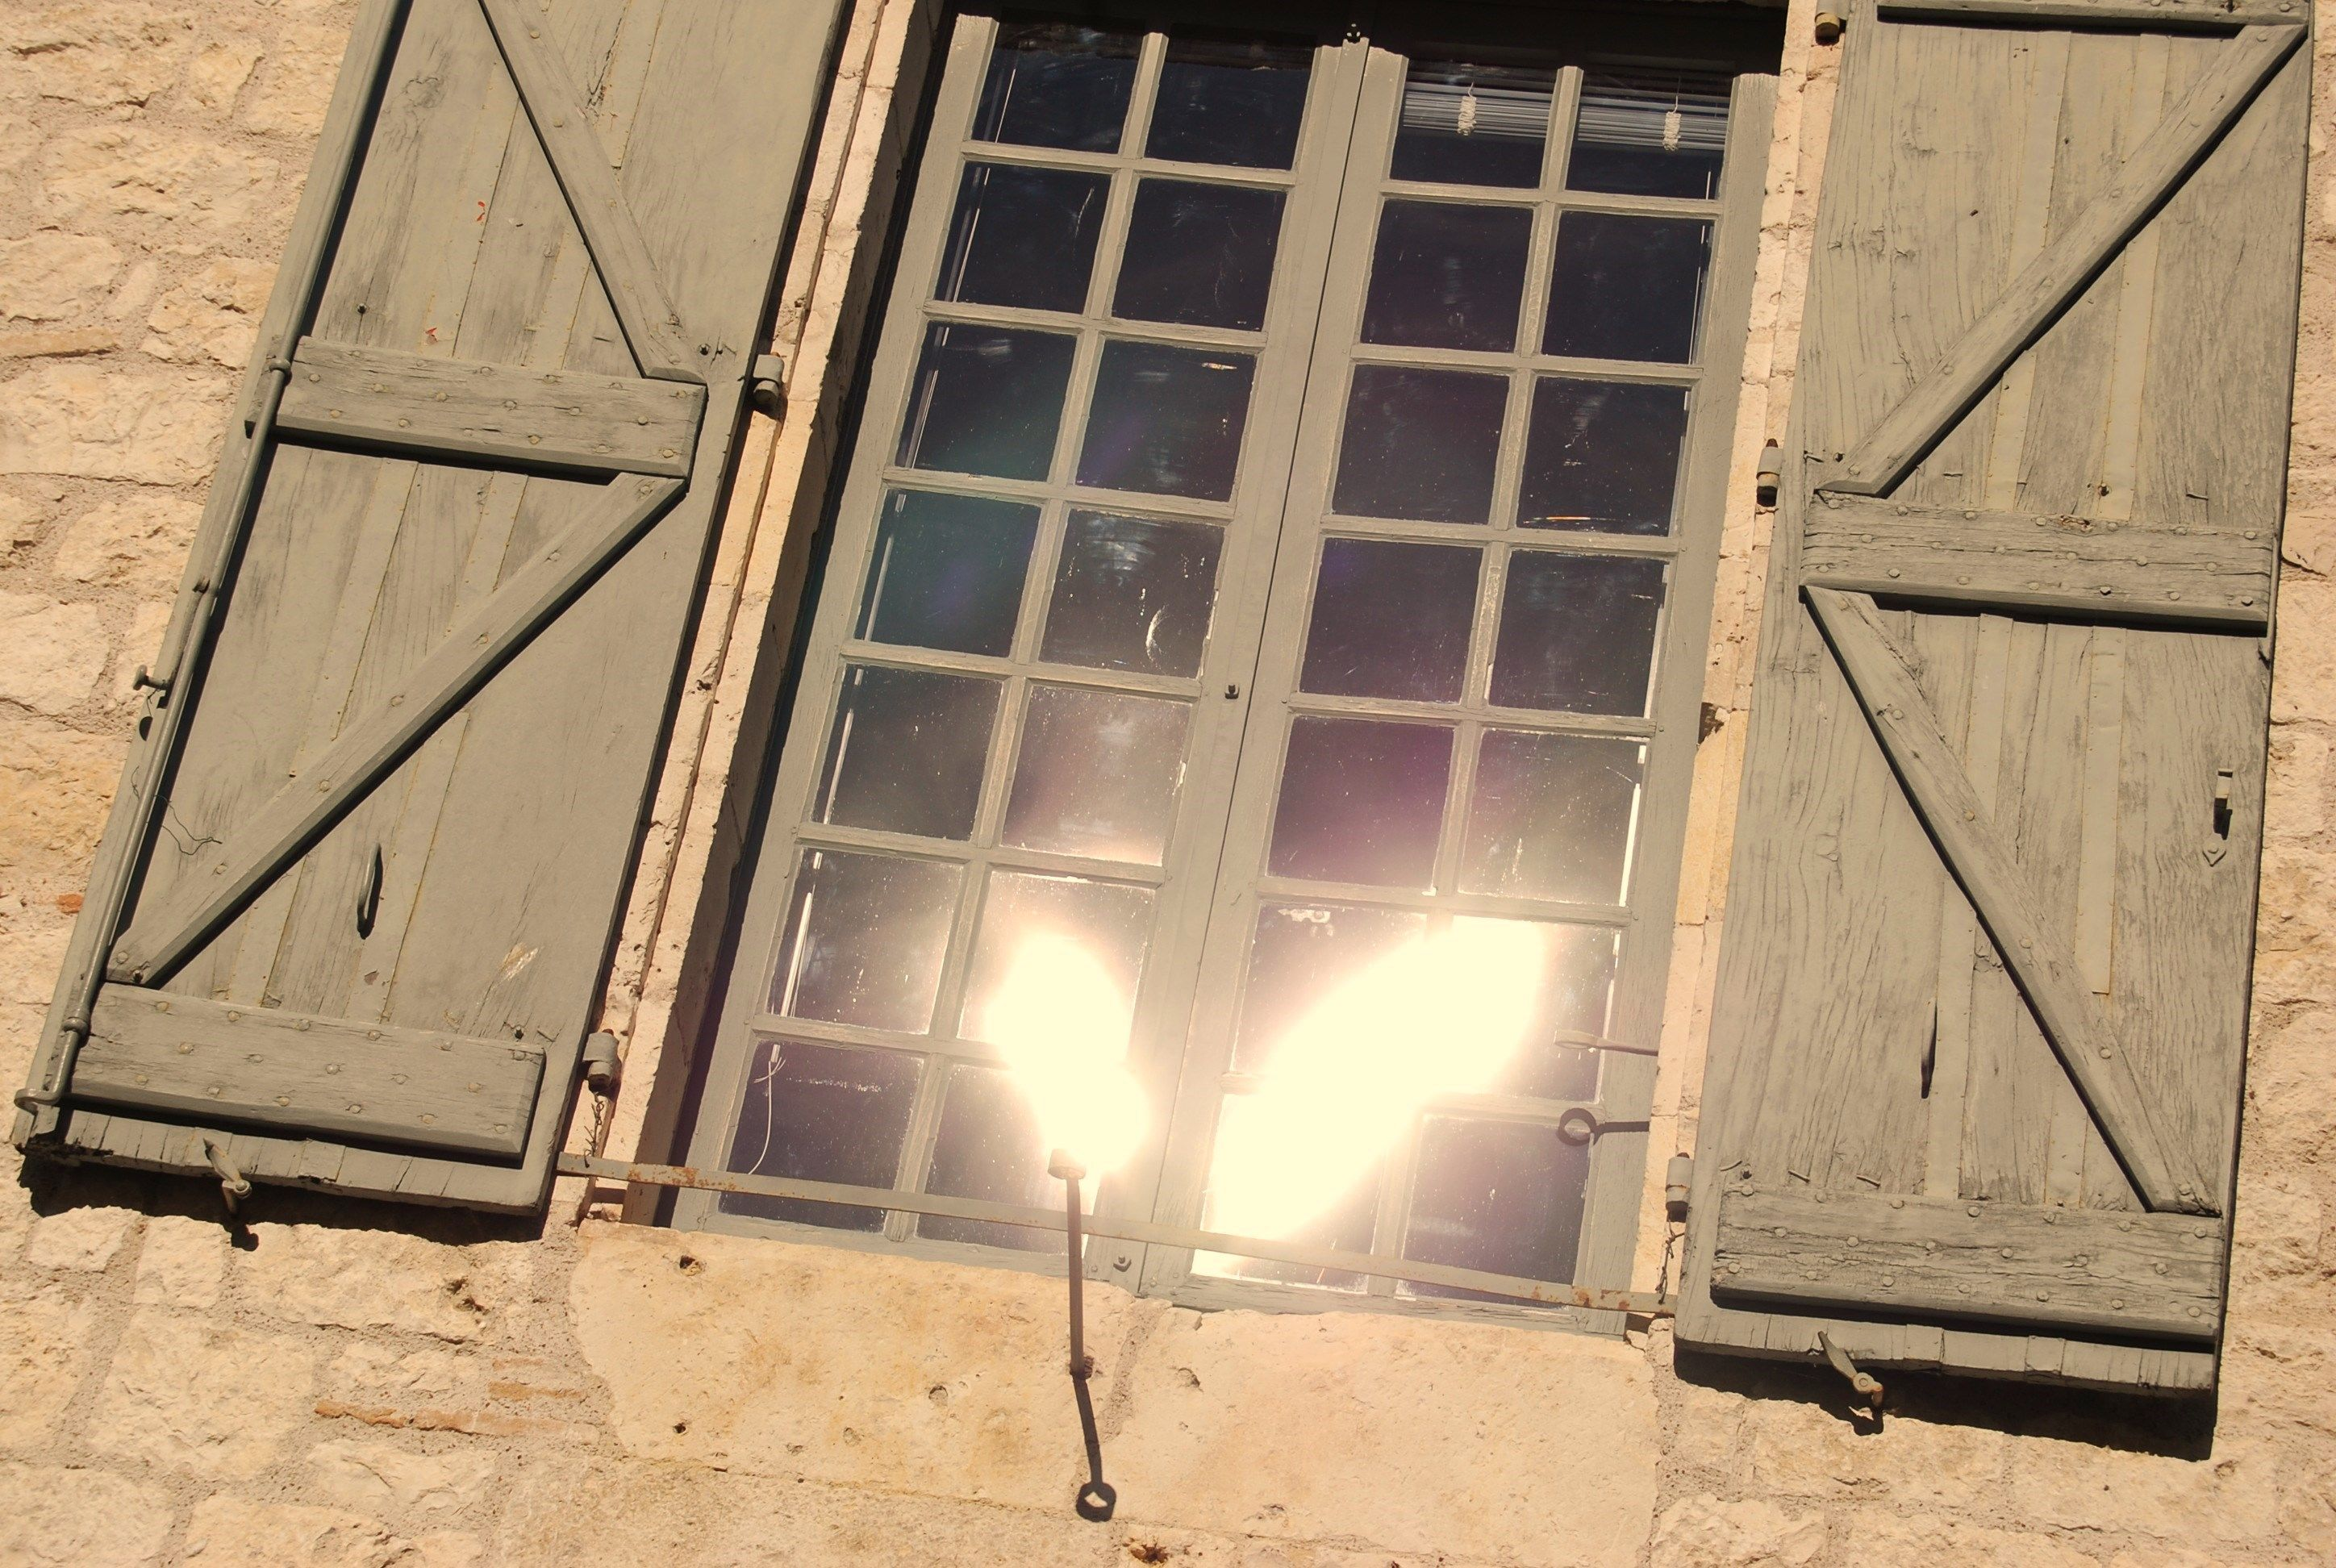 reflecting sunlight in old window